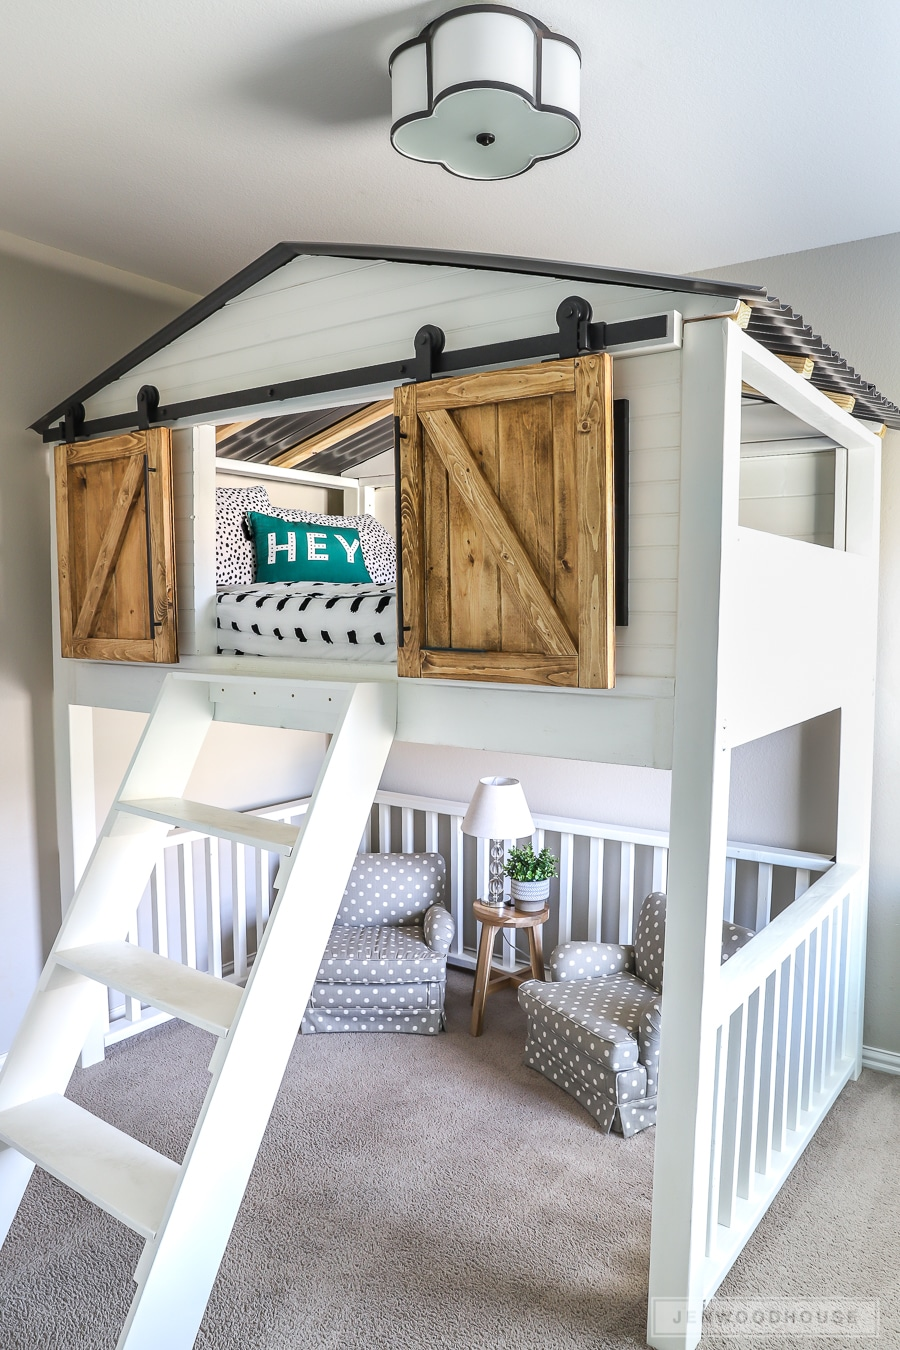 How To Build A Diy Sliding Barn Door Loft Bed Full Size